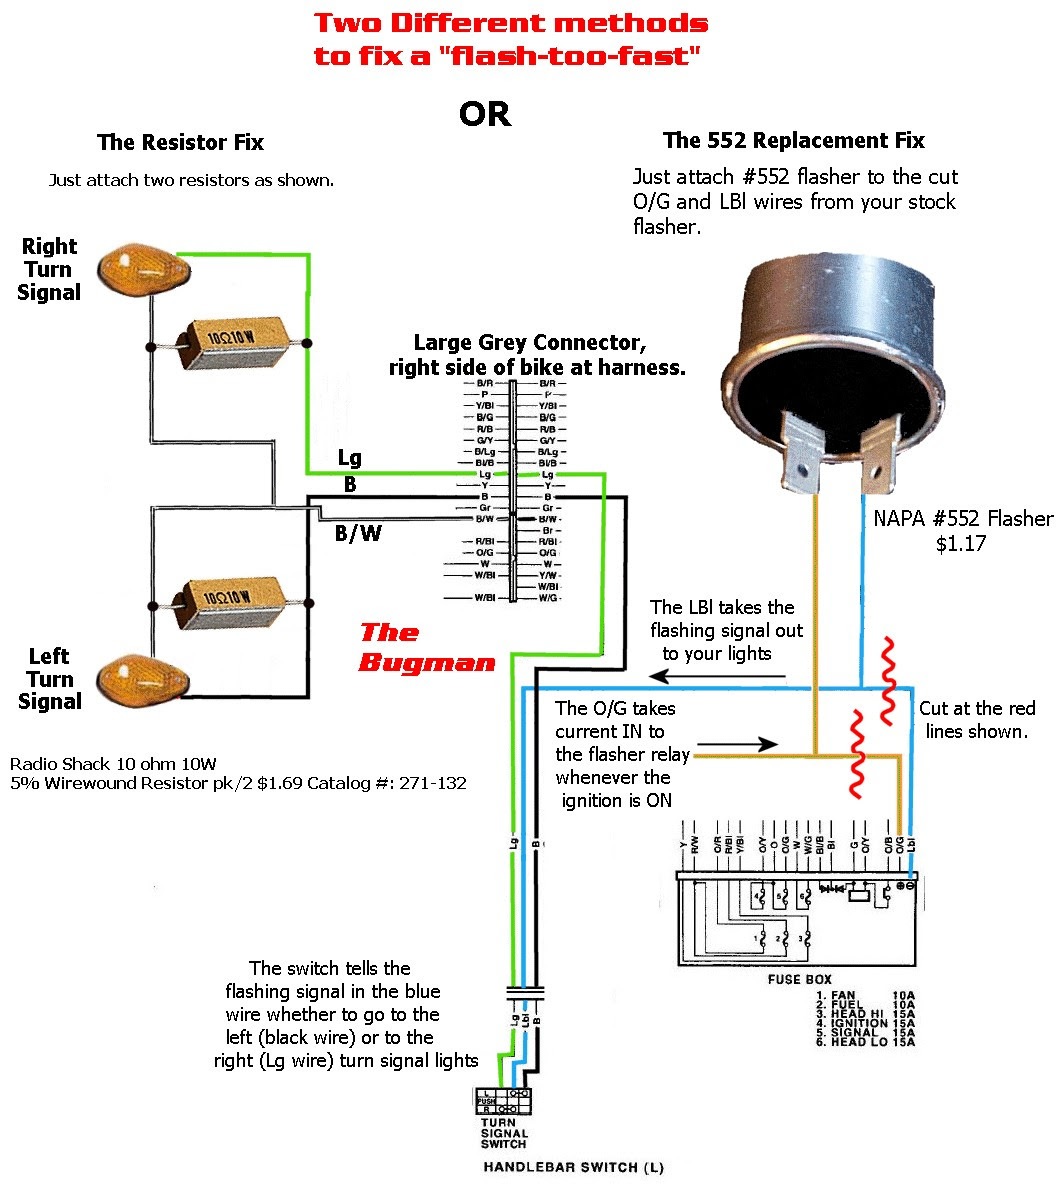 Diagram Led Flasher Wiring Diagram Full Version Hd Quality Wiring Diagram Diagramarrons Brunisport It